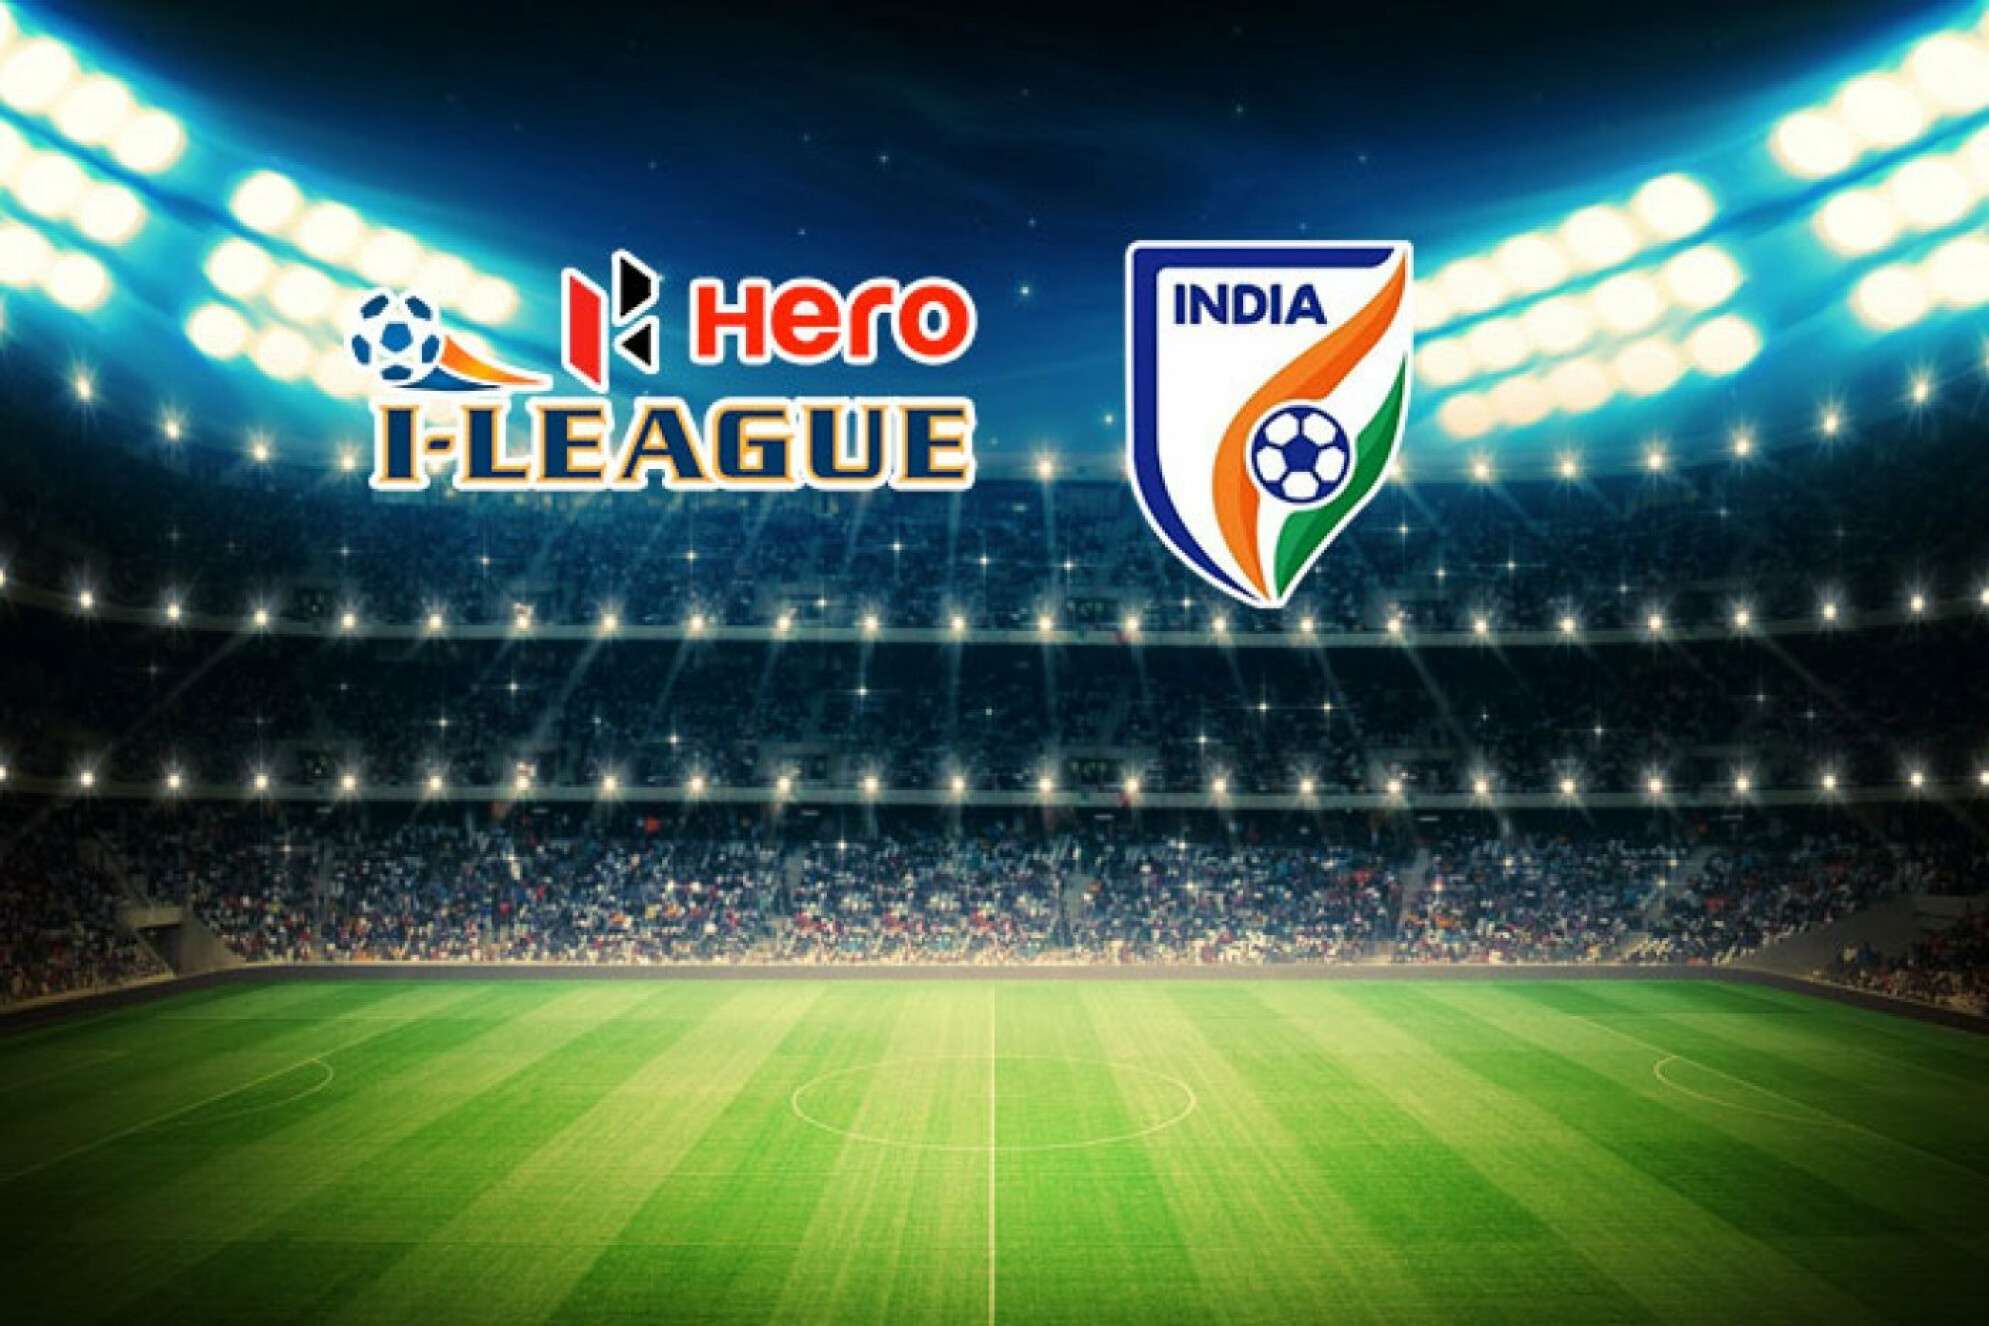 I-league air time to be reduced heavily, promotional activities set to stopped